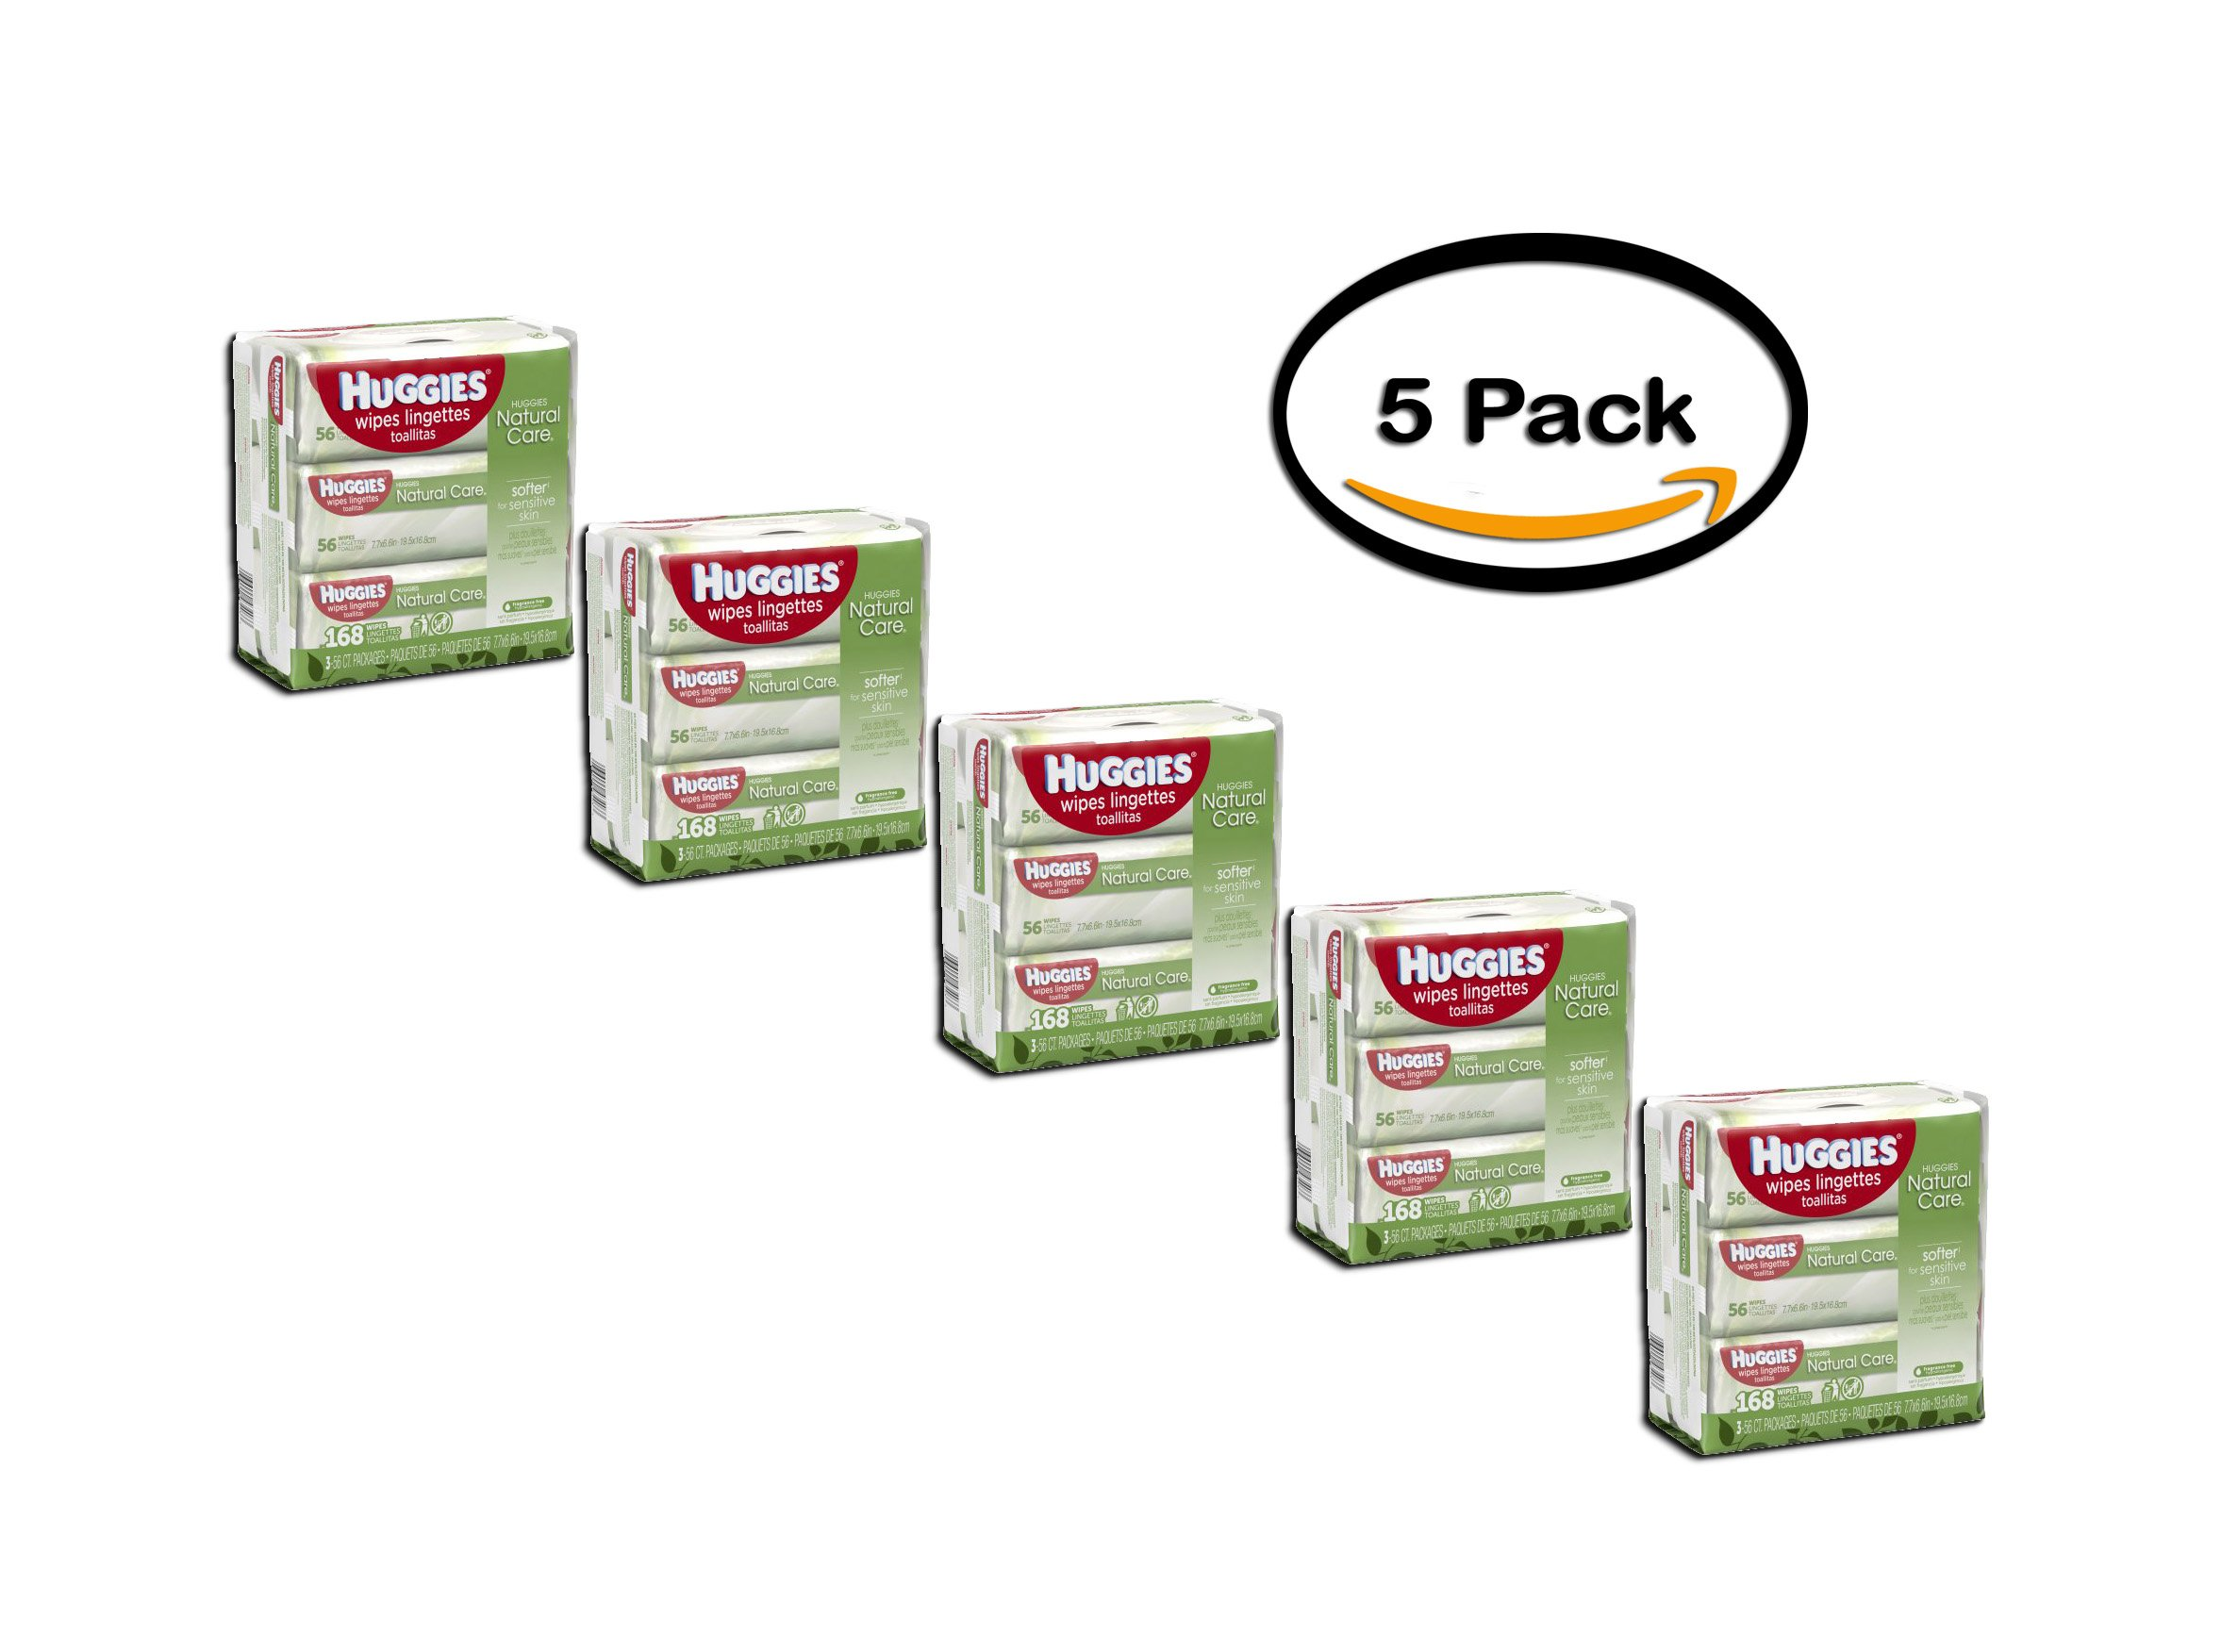 PACK OF 5 - Huggies Natural Care Baby Wipes, Sensitive, 3 packs of 56 (168 count)